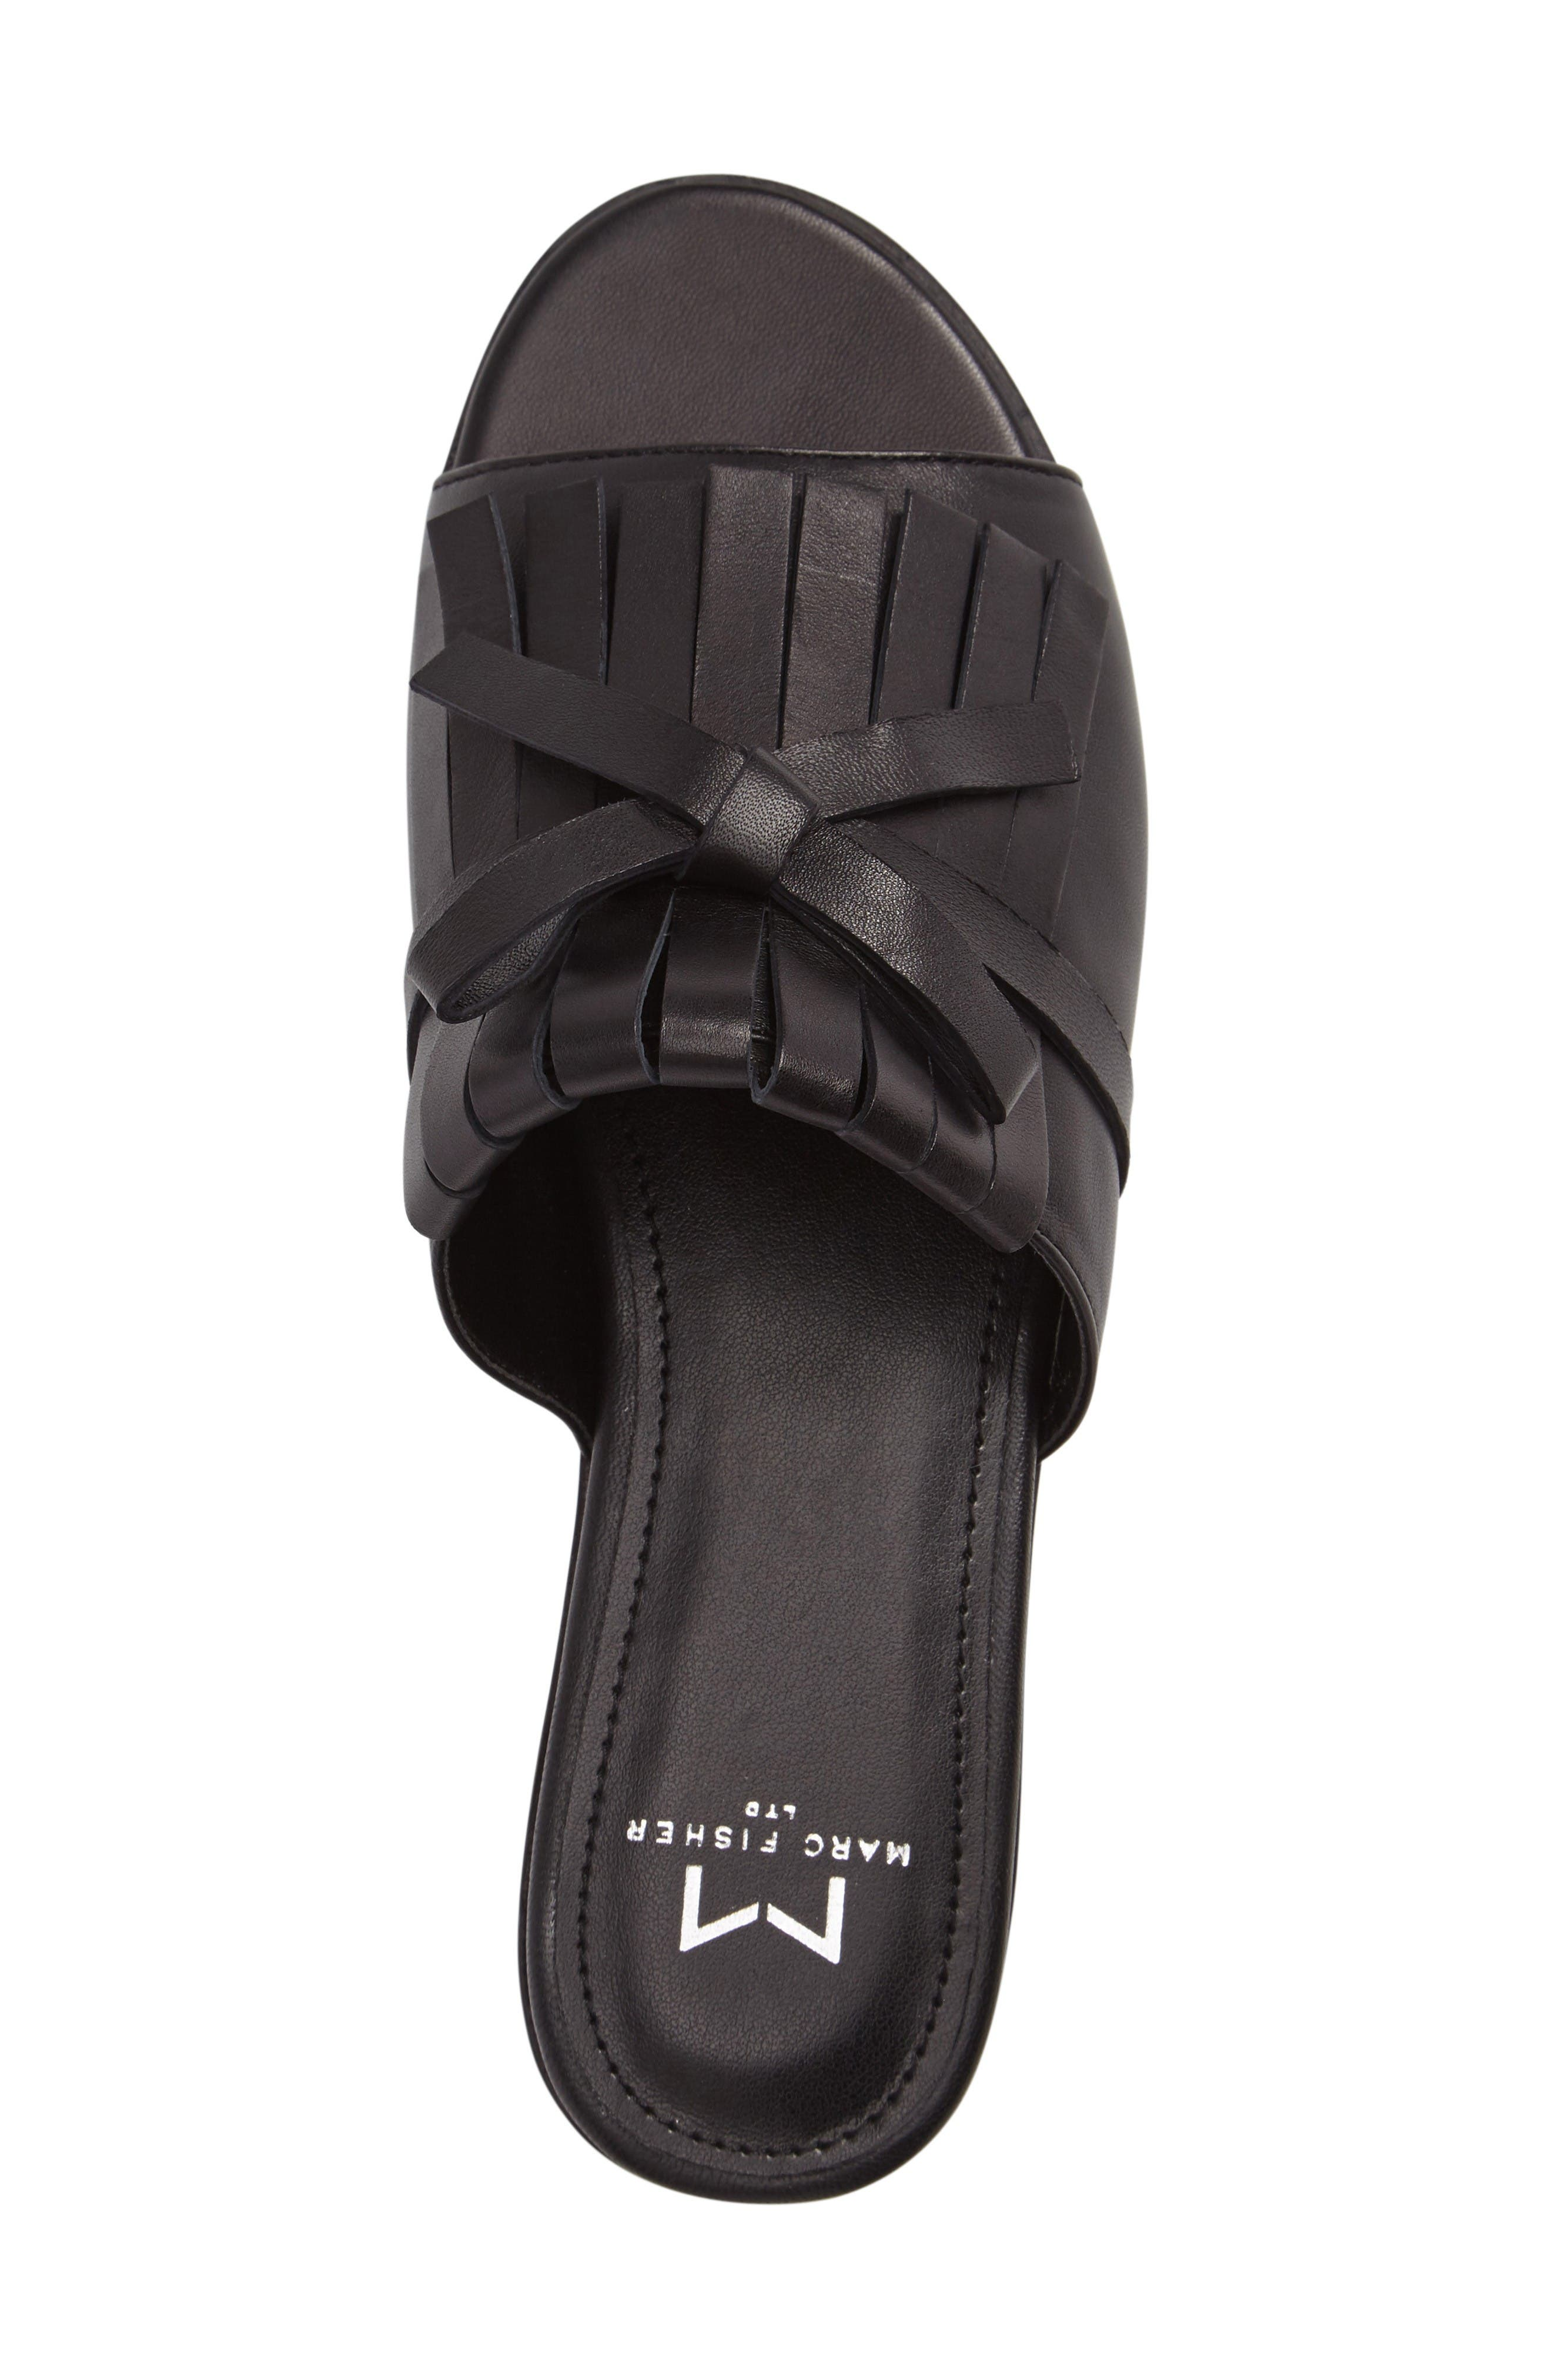 Whitley Slide Sandal,                             Alternate thumbnail 8, color,                             001